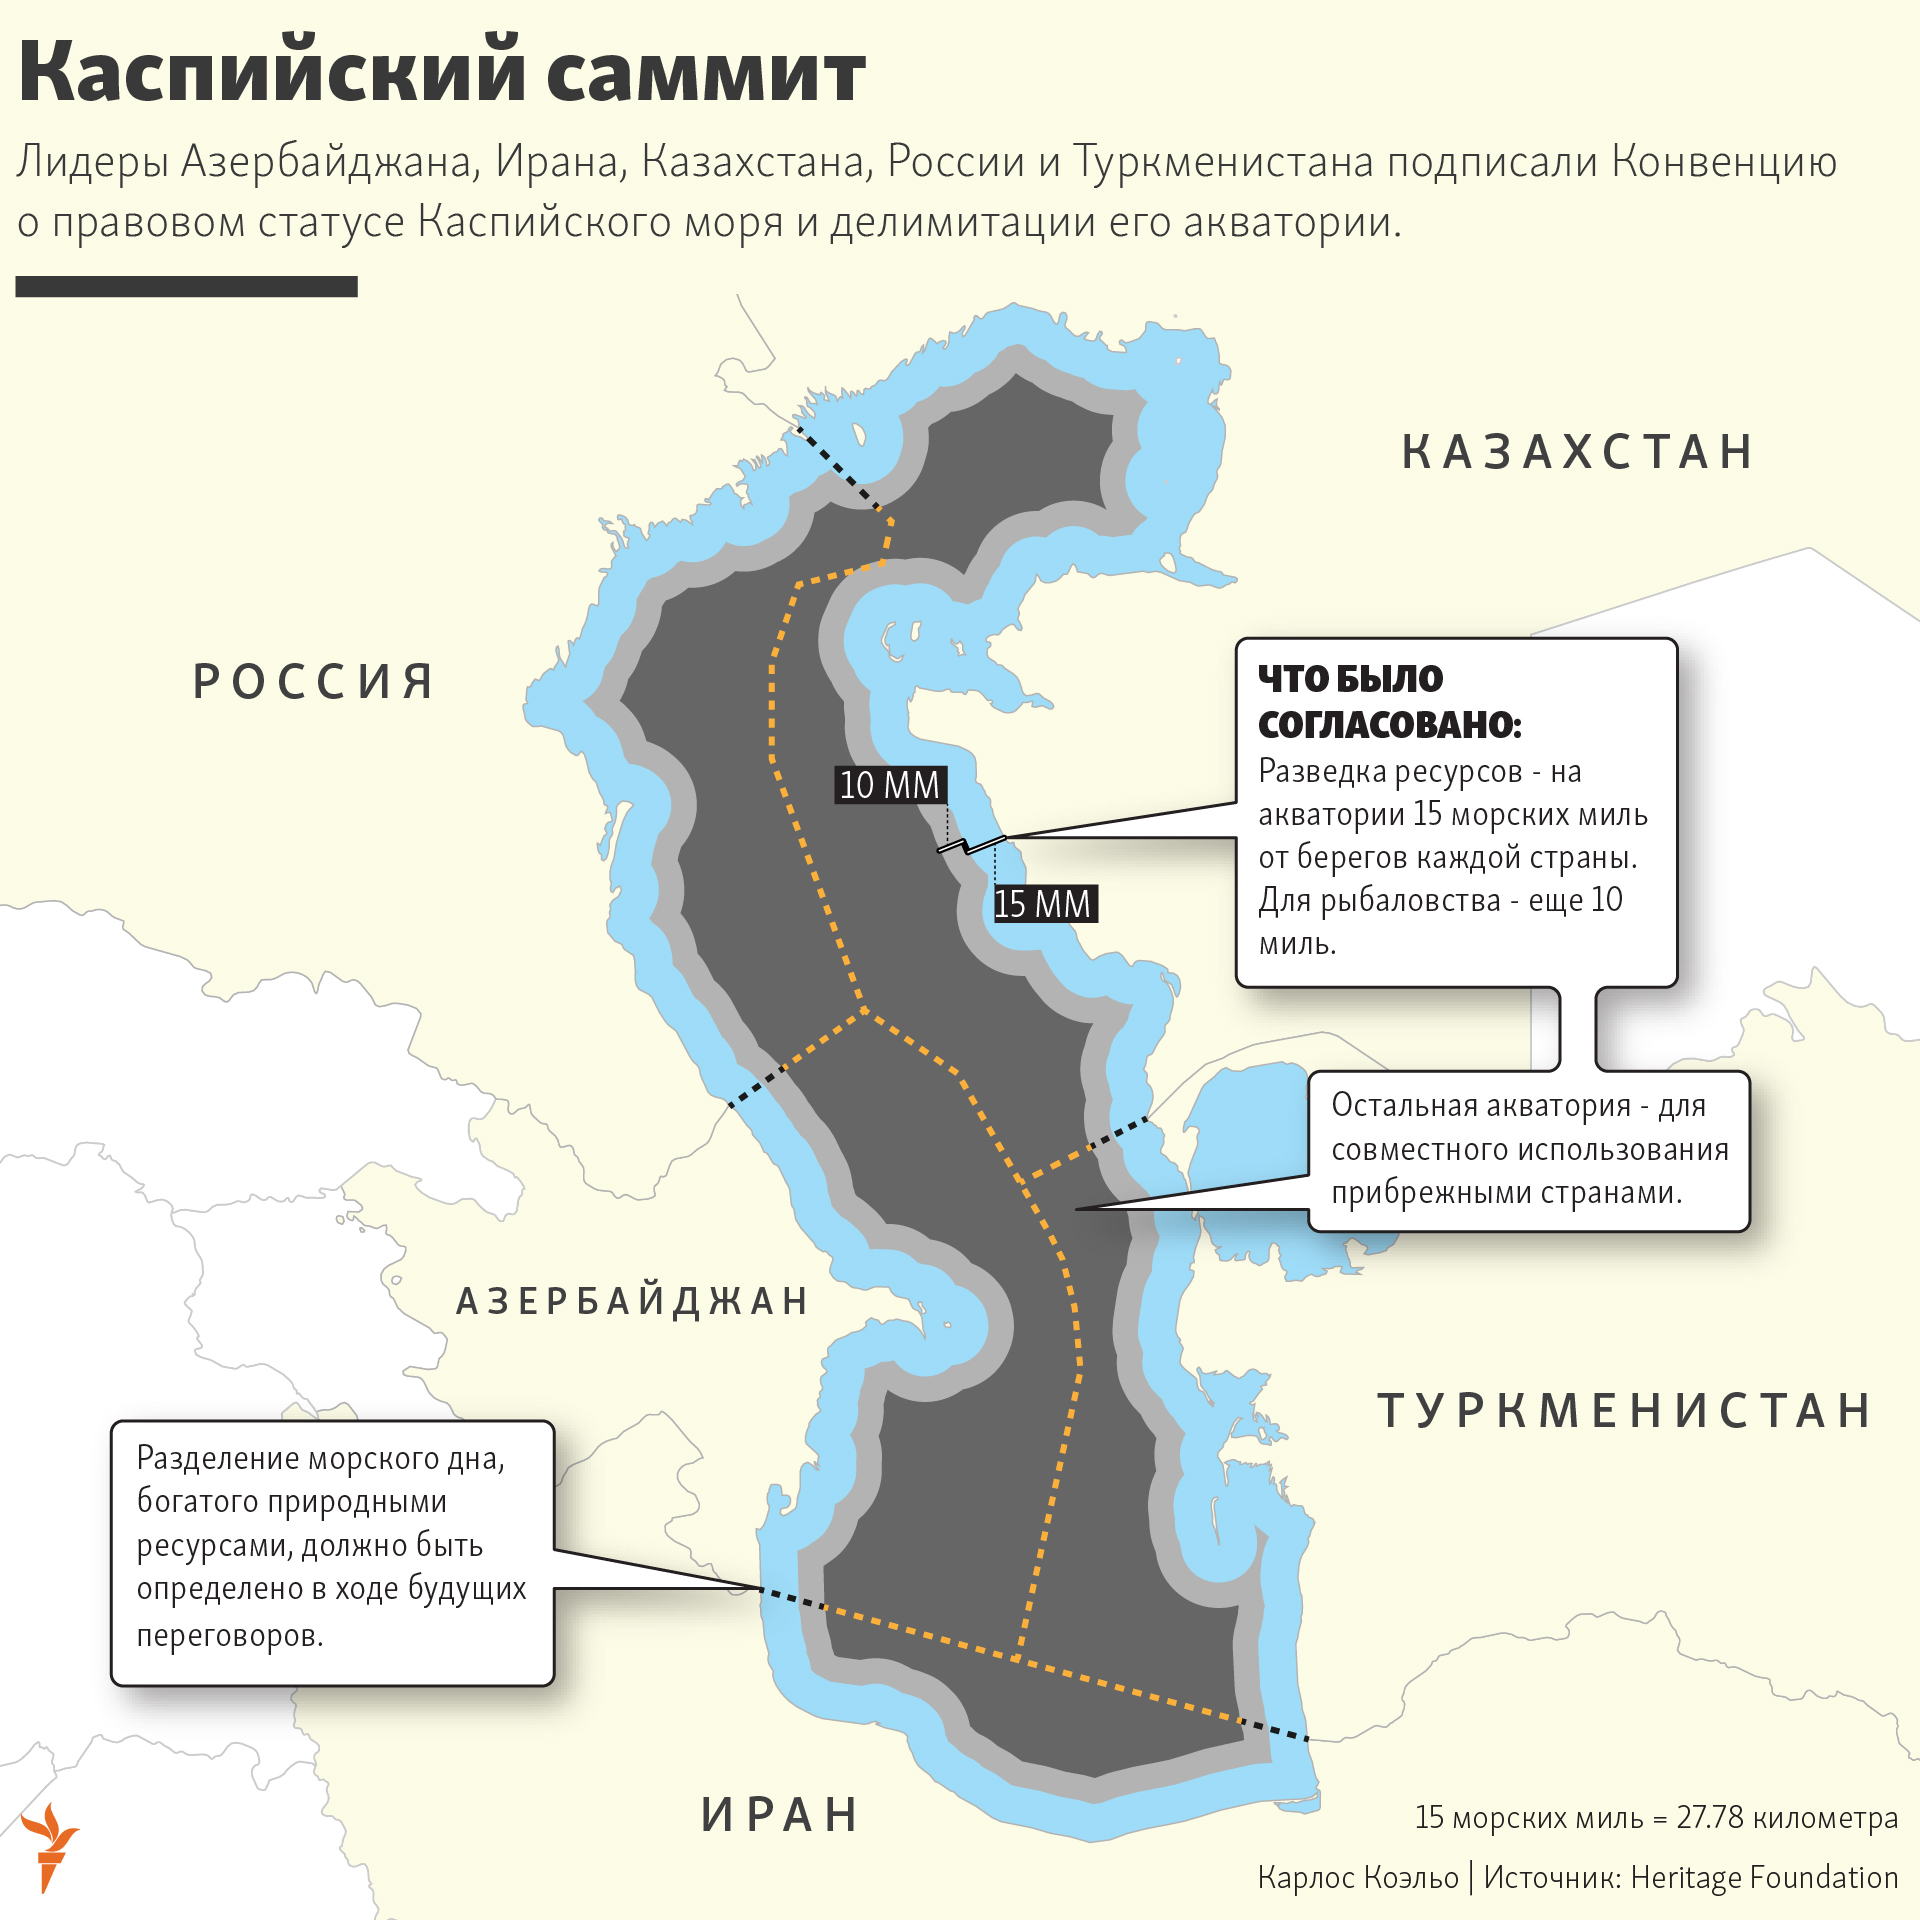 infographic about the Caspian summit